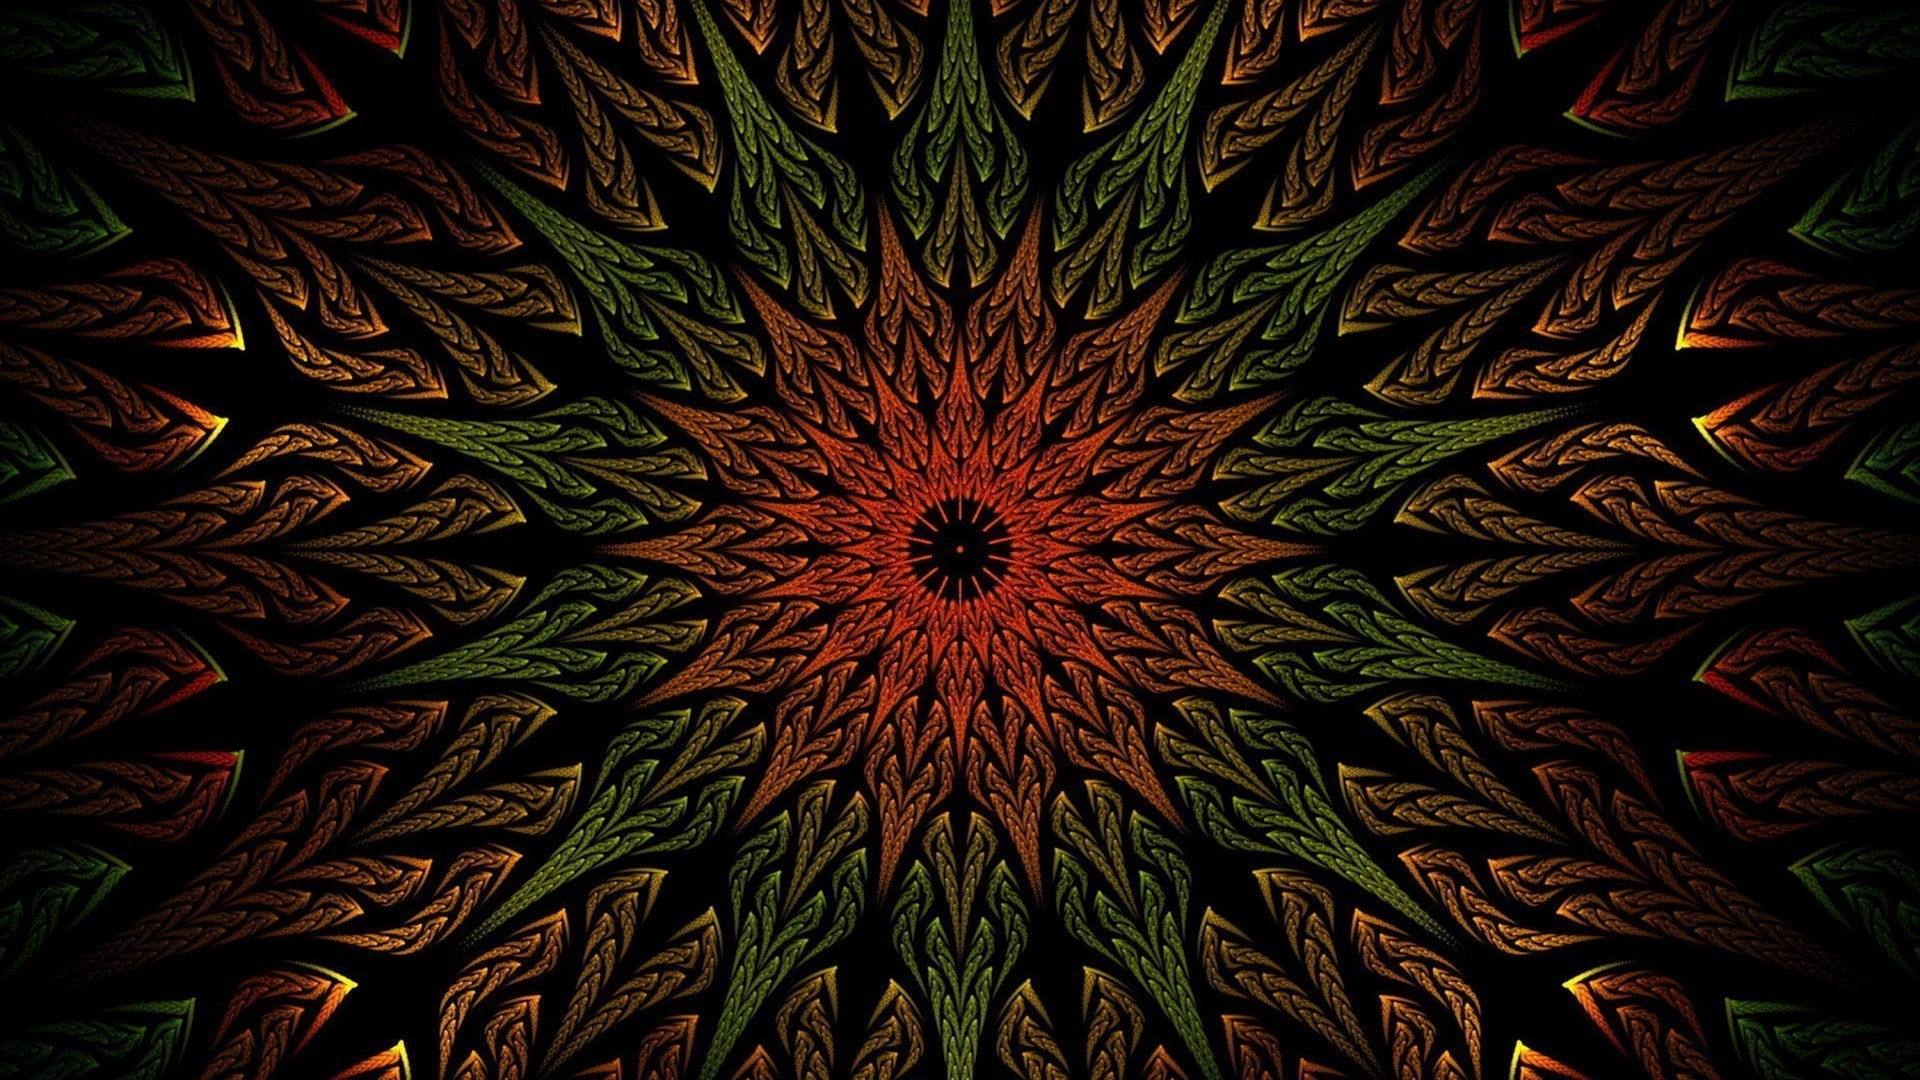 grateful dead wallpaper 1920x1080